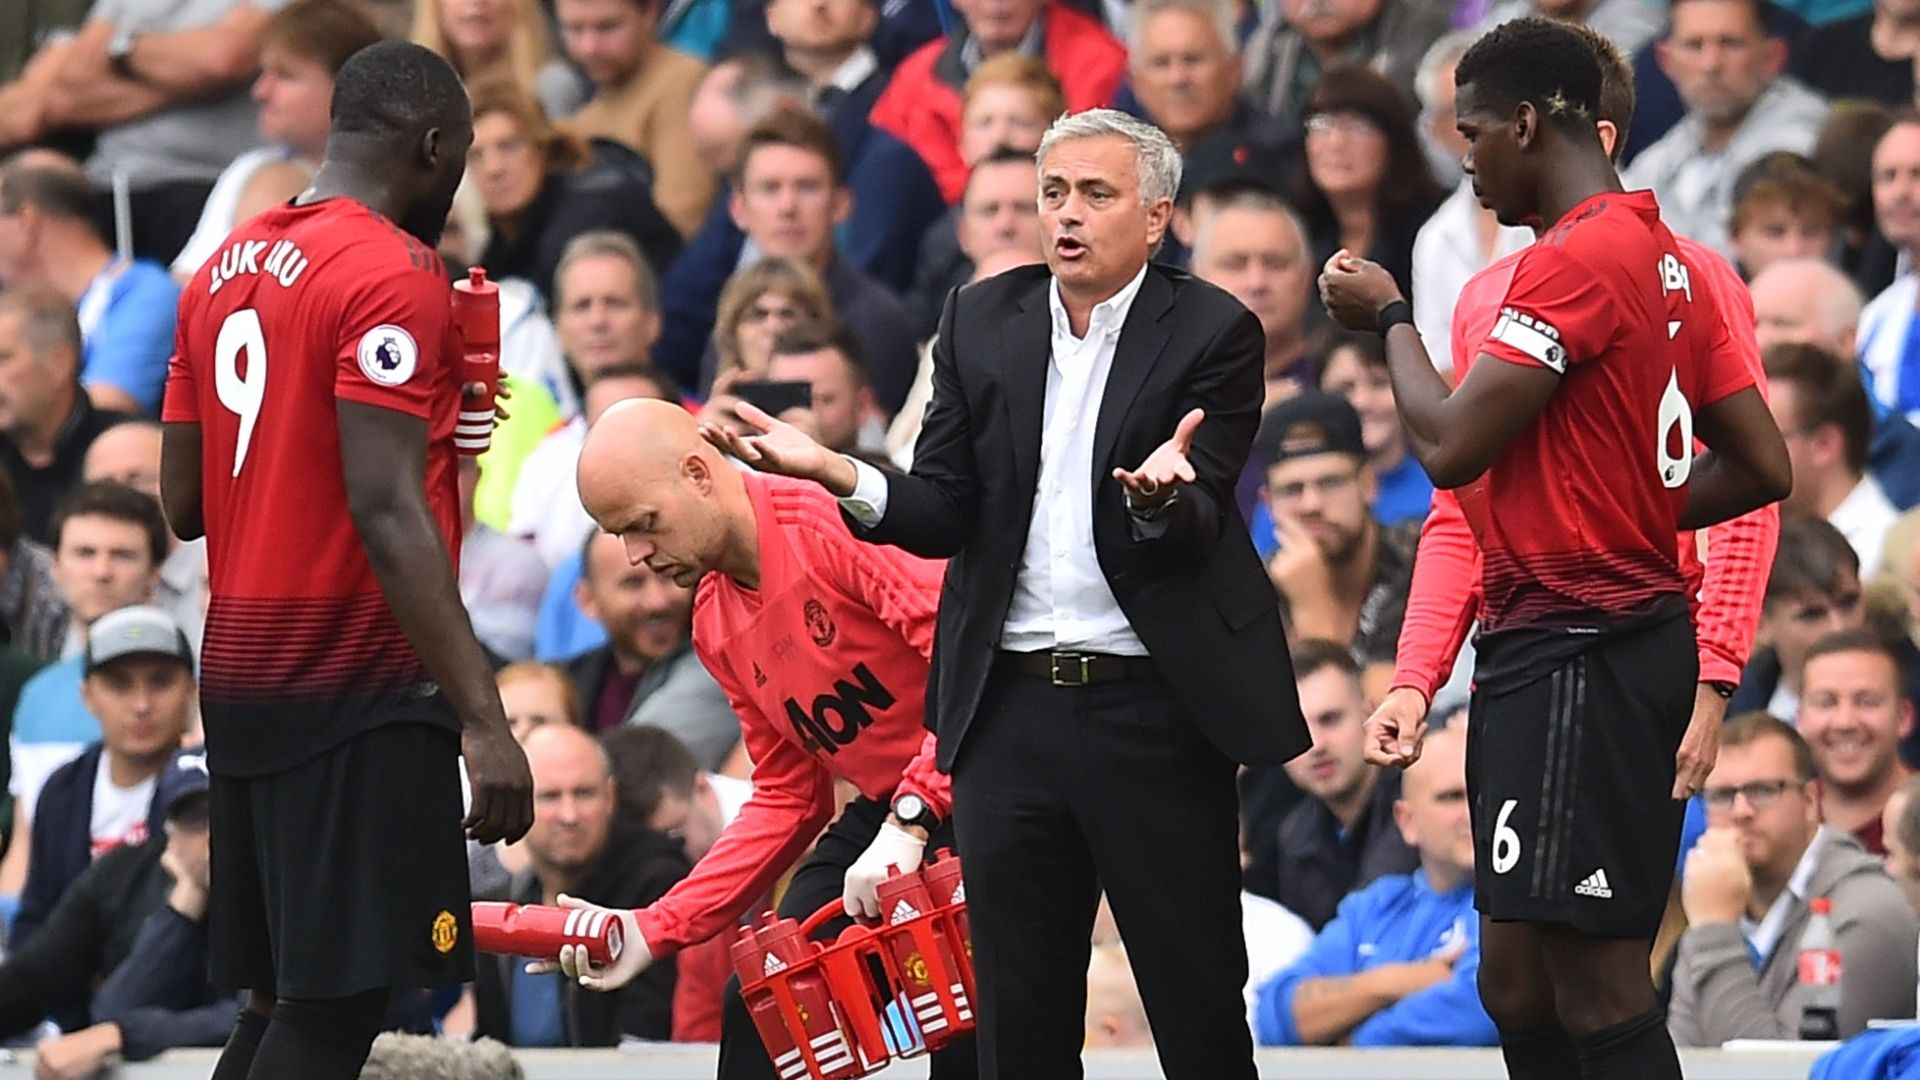 Man United must get past mixed messages, unacceptable defeats